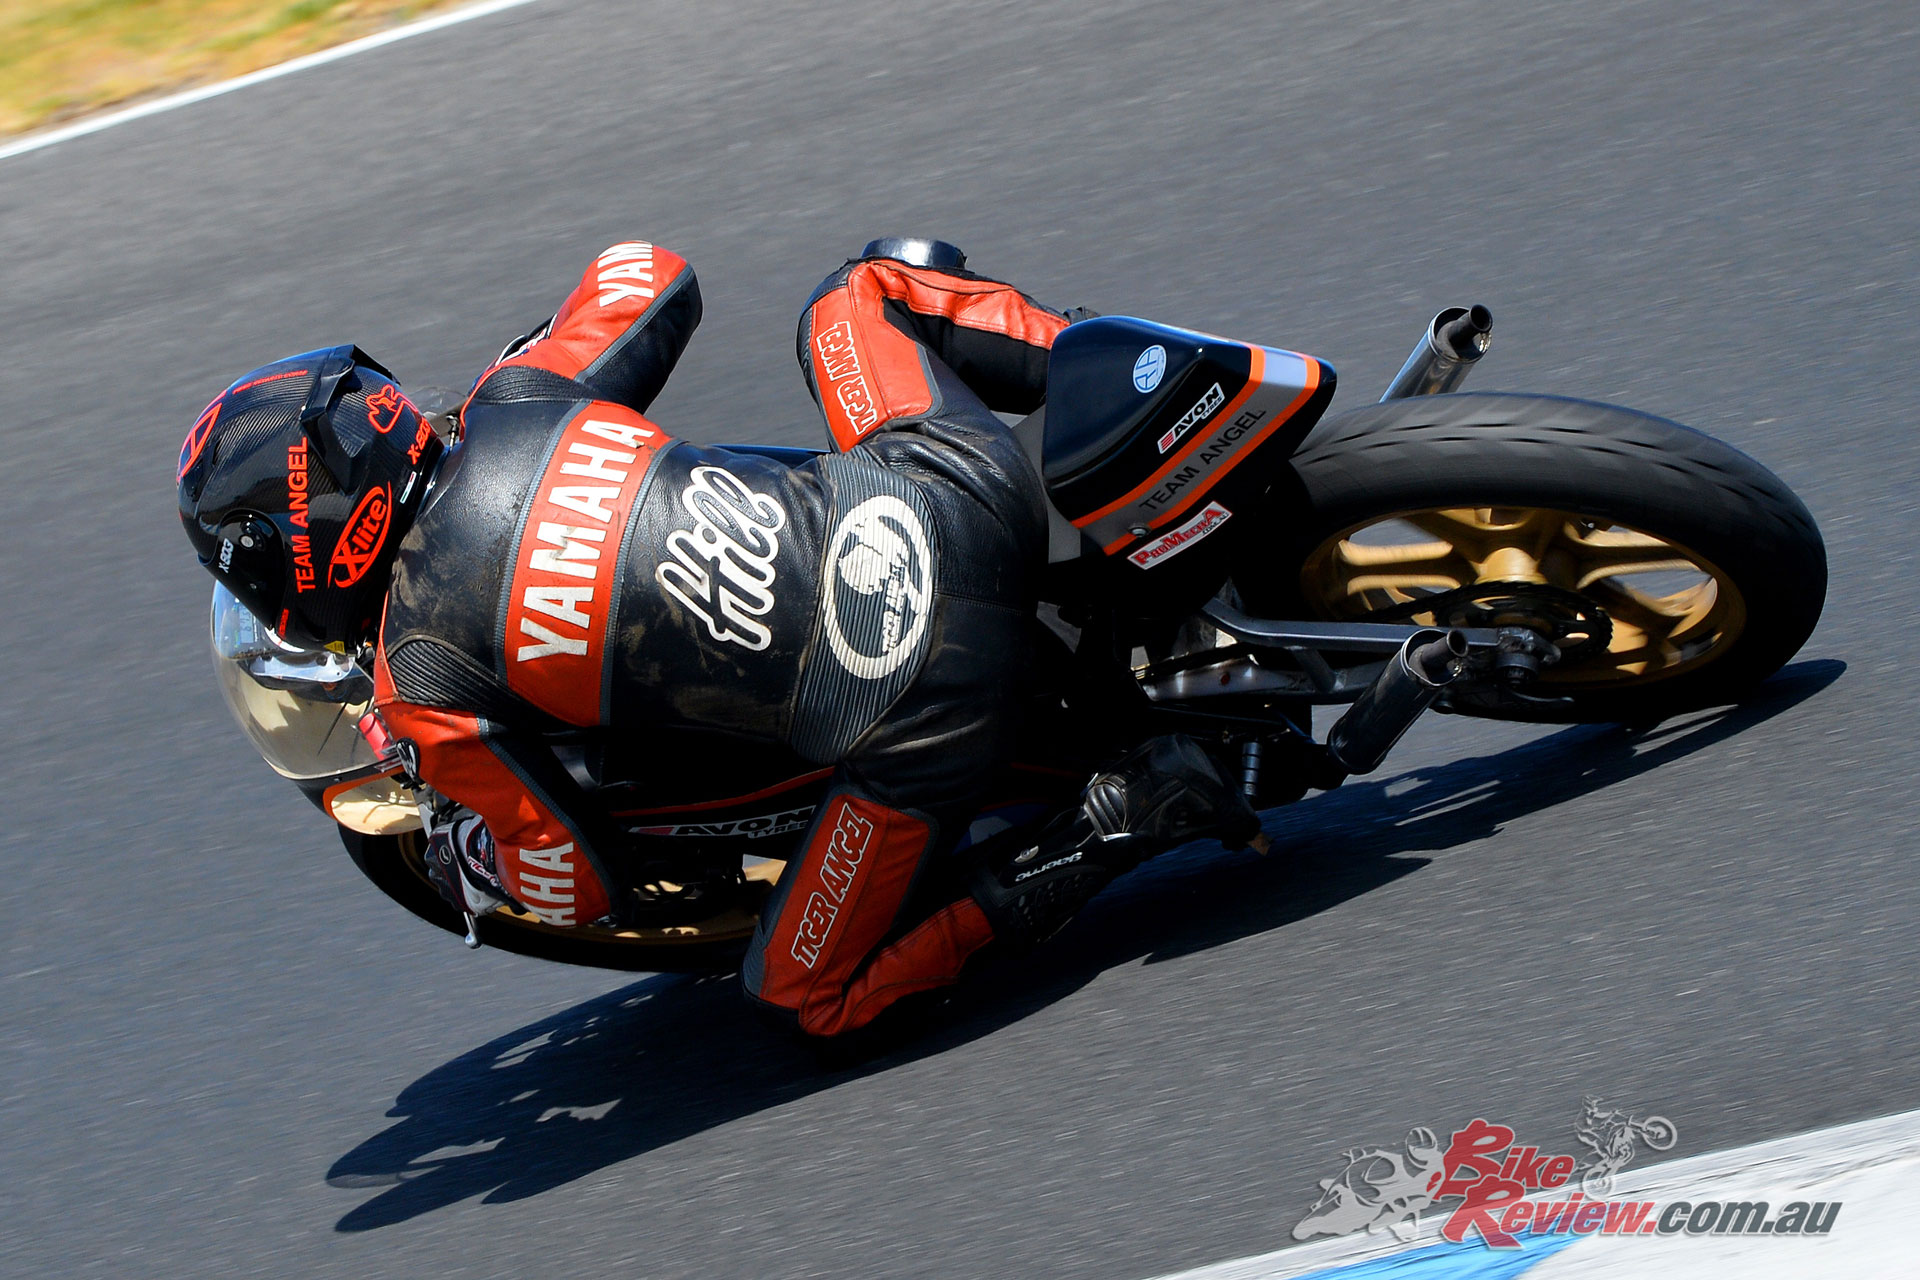 Lachlan Hill on the Yamaha TZ 350 - Image by Russell Colvin